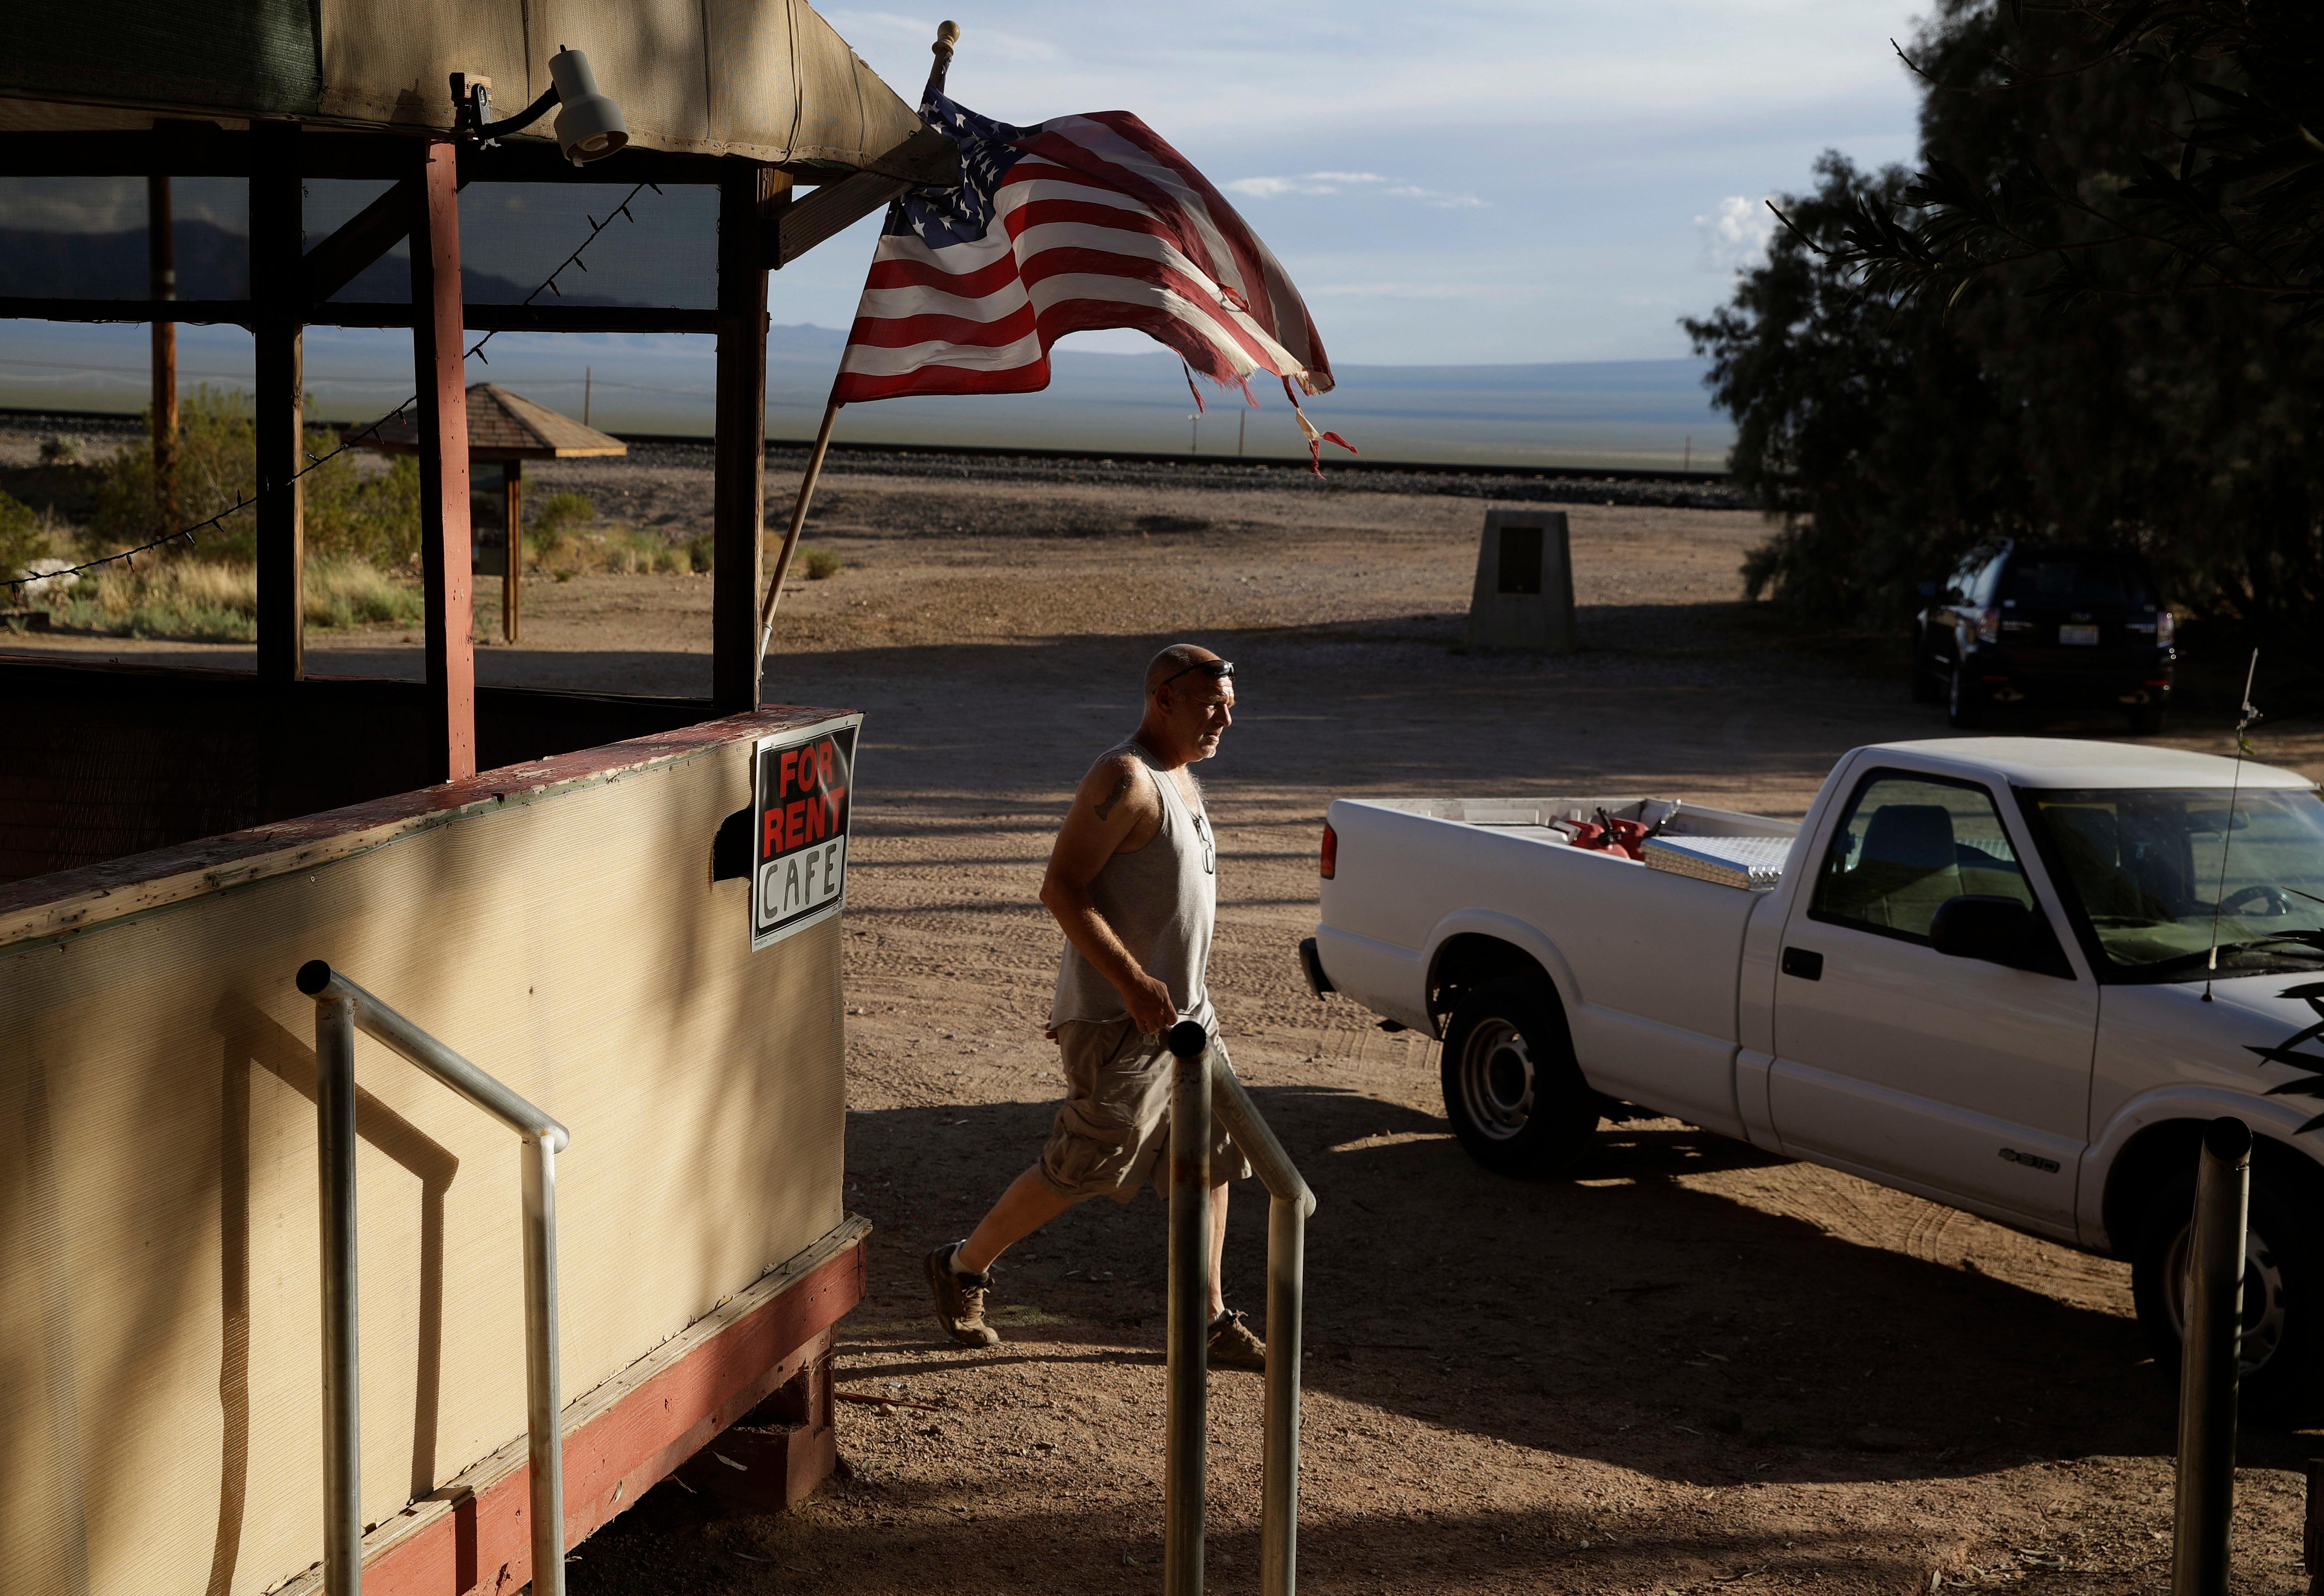 Carl Cavaness walks to the Nipton Trading Post, Thursday, Aug. 3, 2017, in Nipton, Calif. American Green Inc., one of the nation's largest cannabis companies, announced it has bought the entire 80 acre California desert town of Nipton. (AP Photo/John Locher)